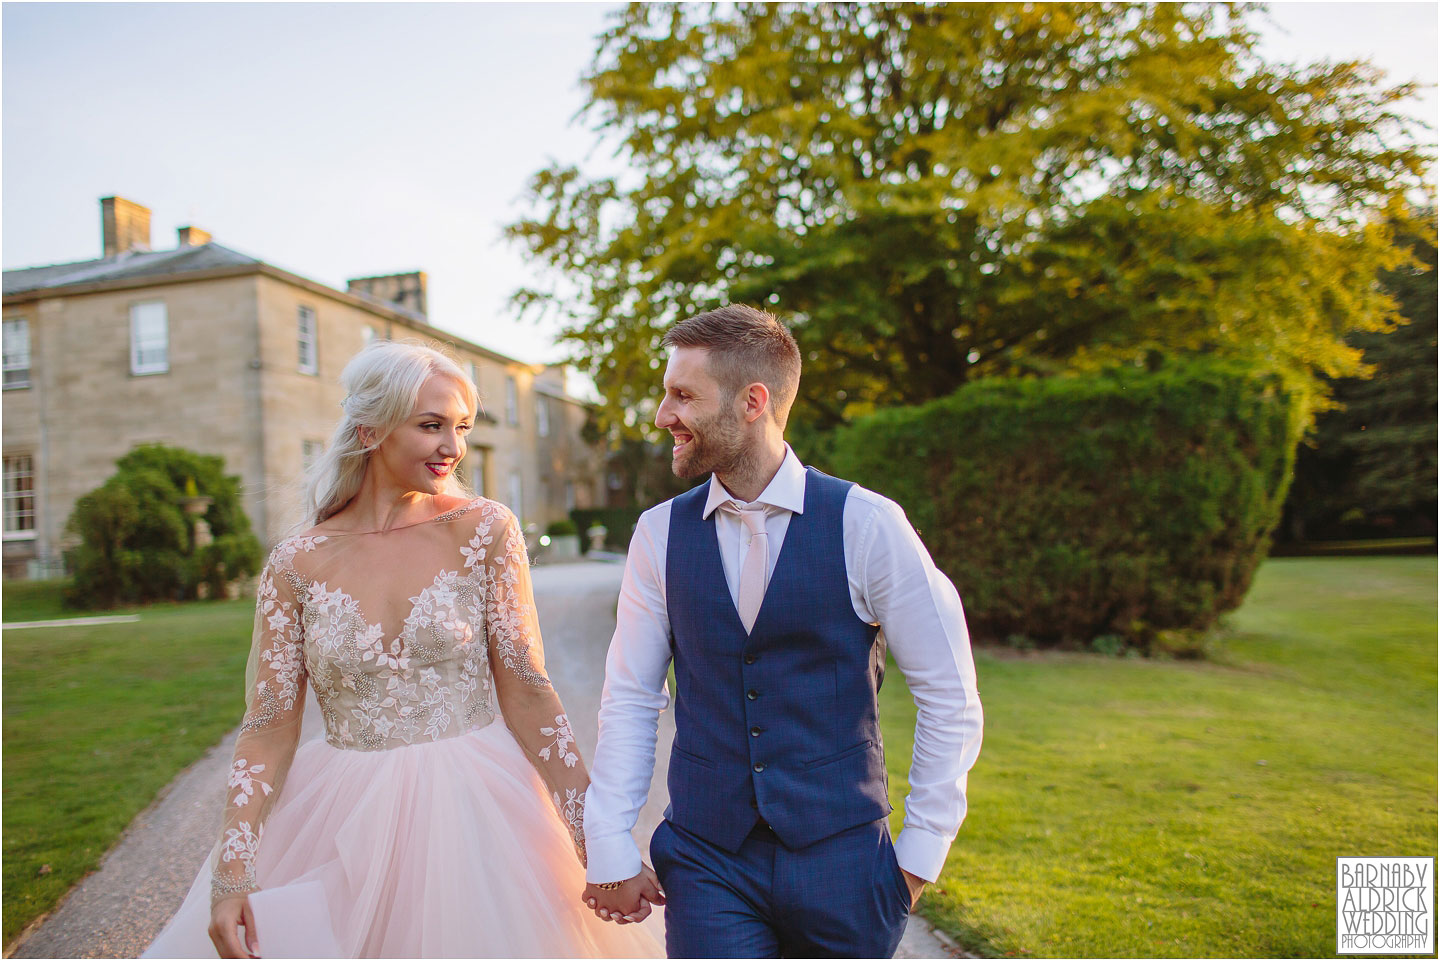 Golden Hour portraits at Saltmarshe Hall near Goole in East Yorkshire, Wedding photography at Saltmarshe Hall, East Yorkshire Wedding Photographer Barnaby Aldrick